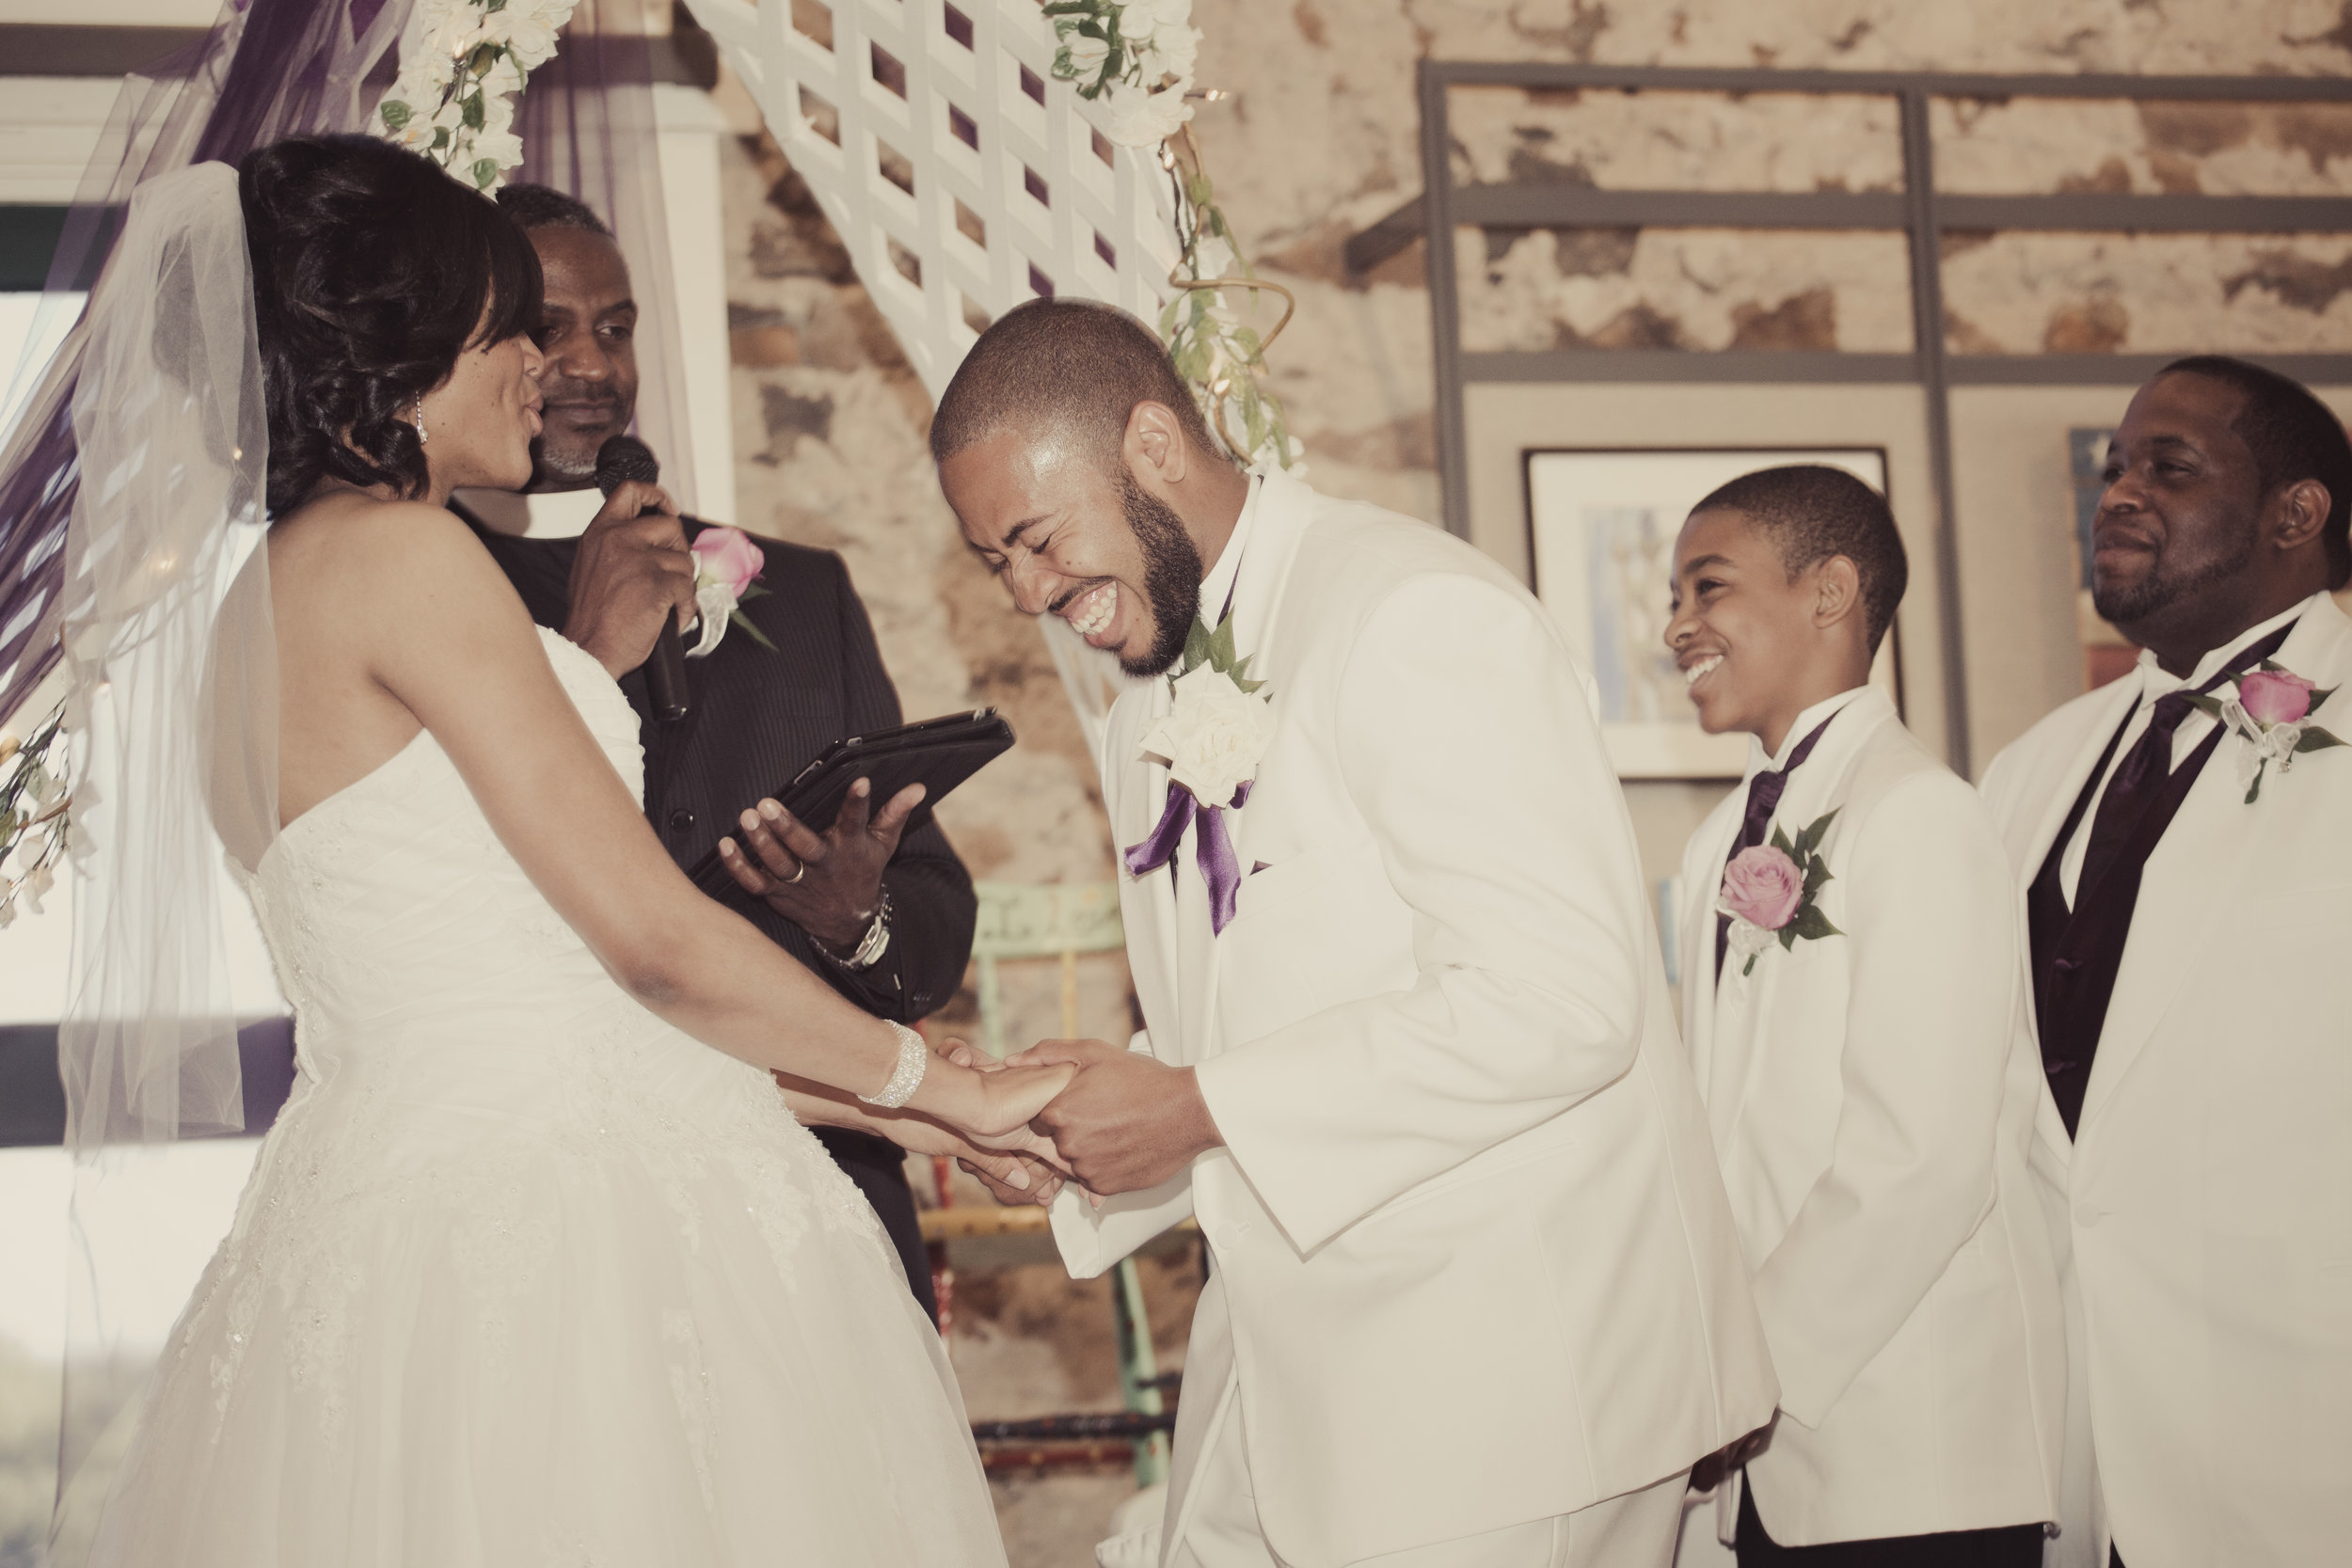 5-24-14_Errol Ebanks_The Finney Wedding_0528.jpg